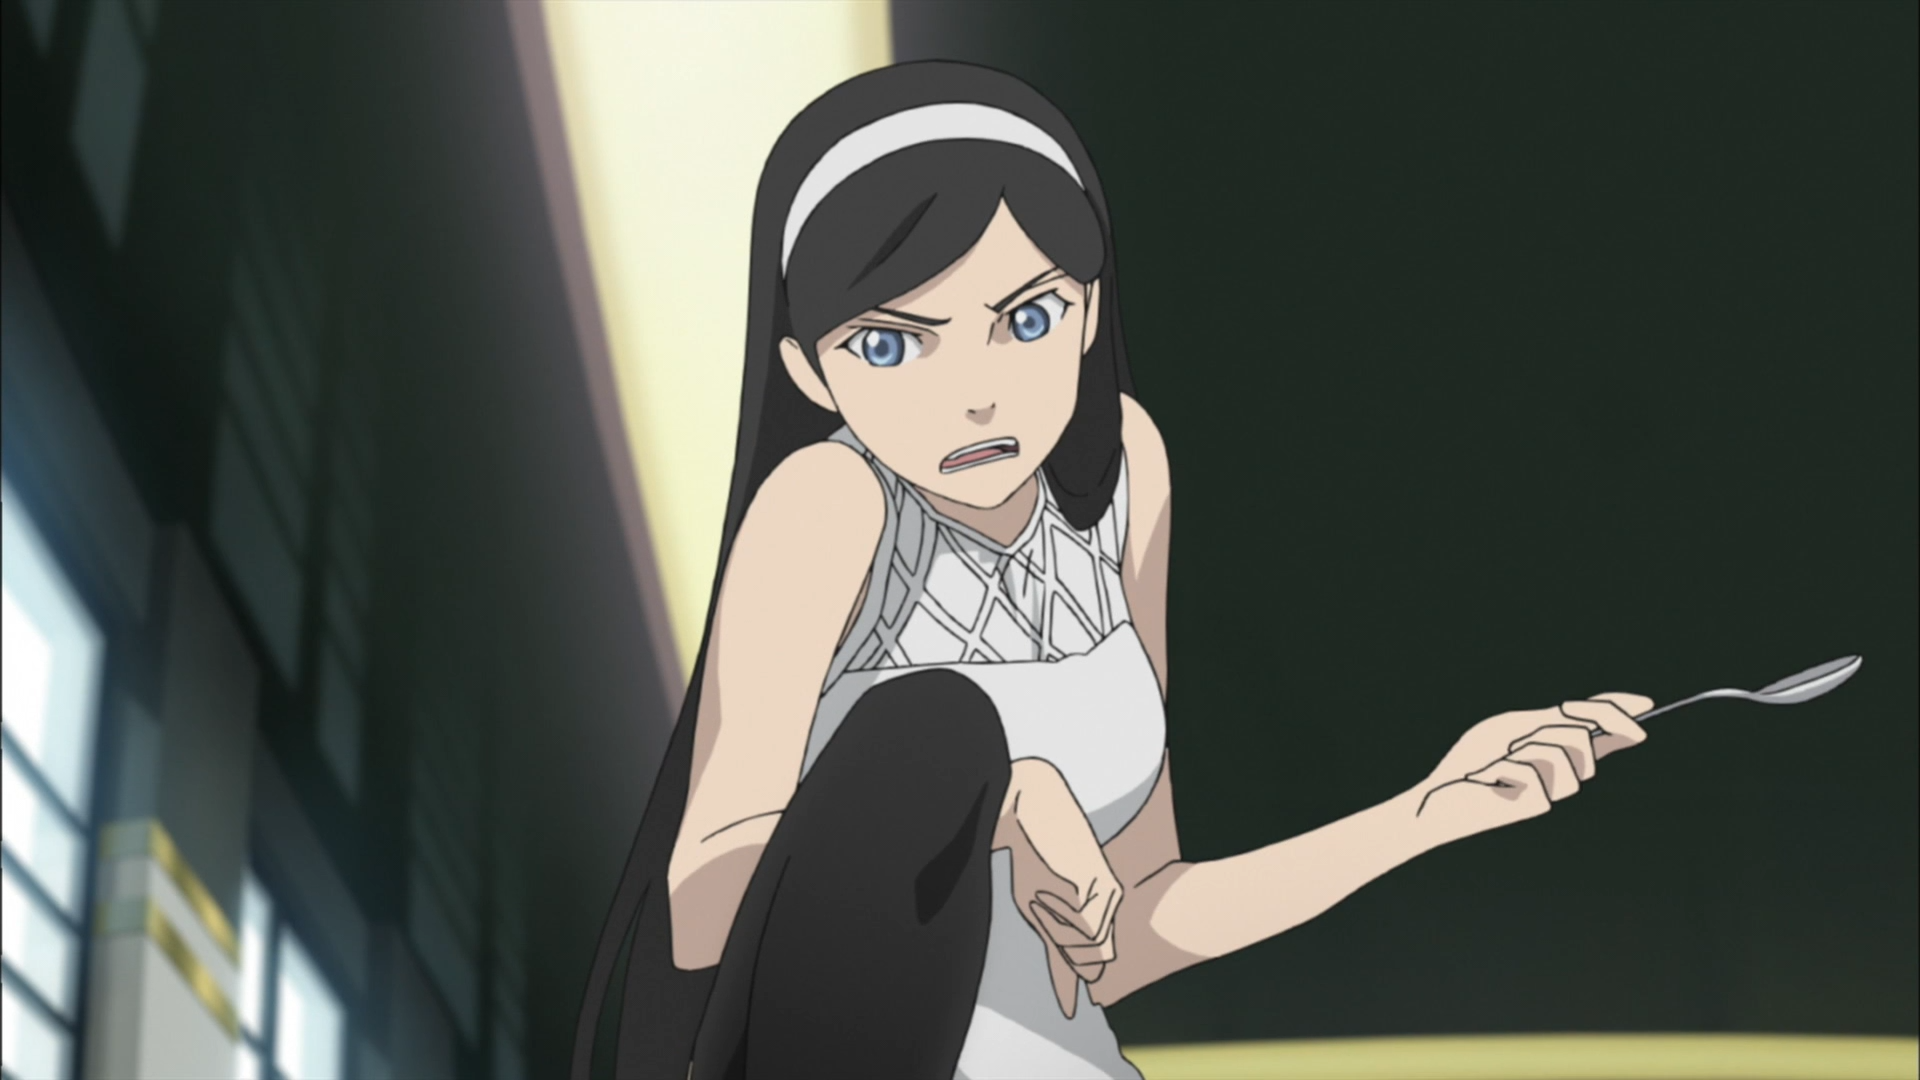 Maya Kumashiro brandishes a spoon in a threatening manner in a scene from the Occult Academy TV anime.